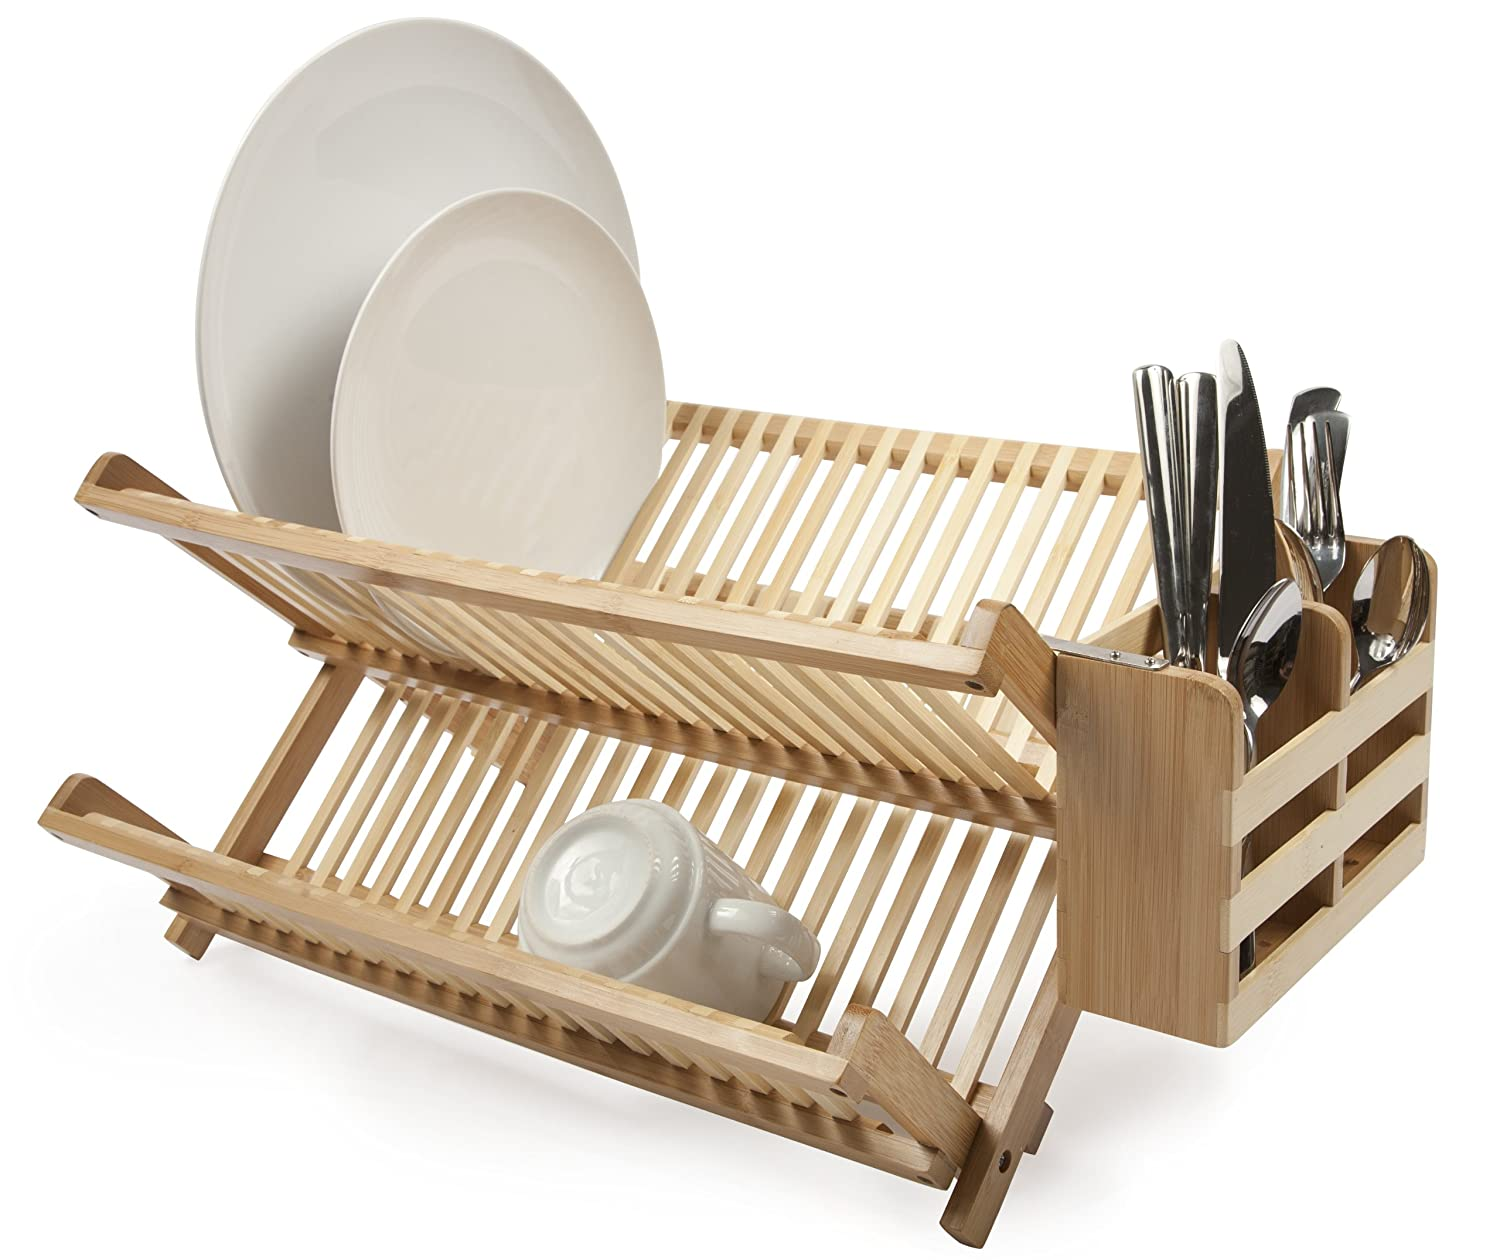 Amazon.com Core Bamboo Dish Rack with Utensil Holder Natural Utensil Organizers Kitchen u0026 Dining  sc 1 st  Amazon.com & Amazon.com: Core Bamboo Dish Rack with Utensil Holder Natural ...